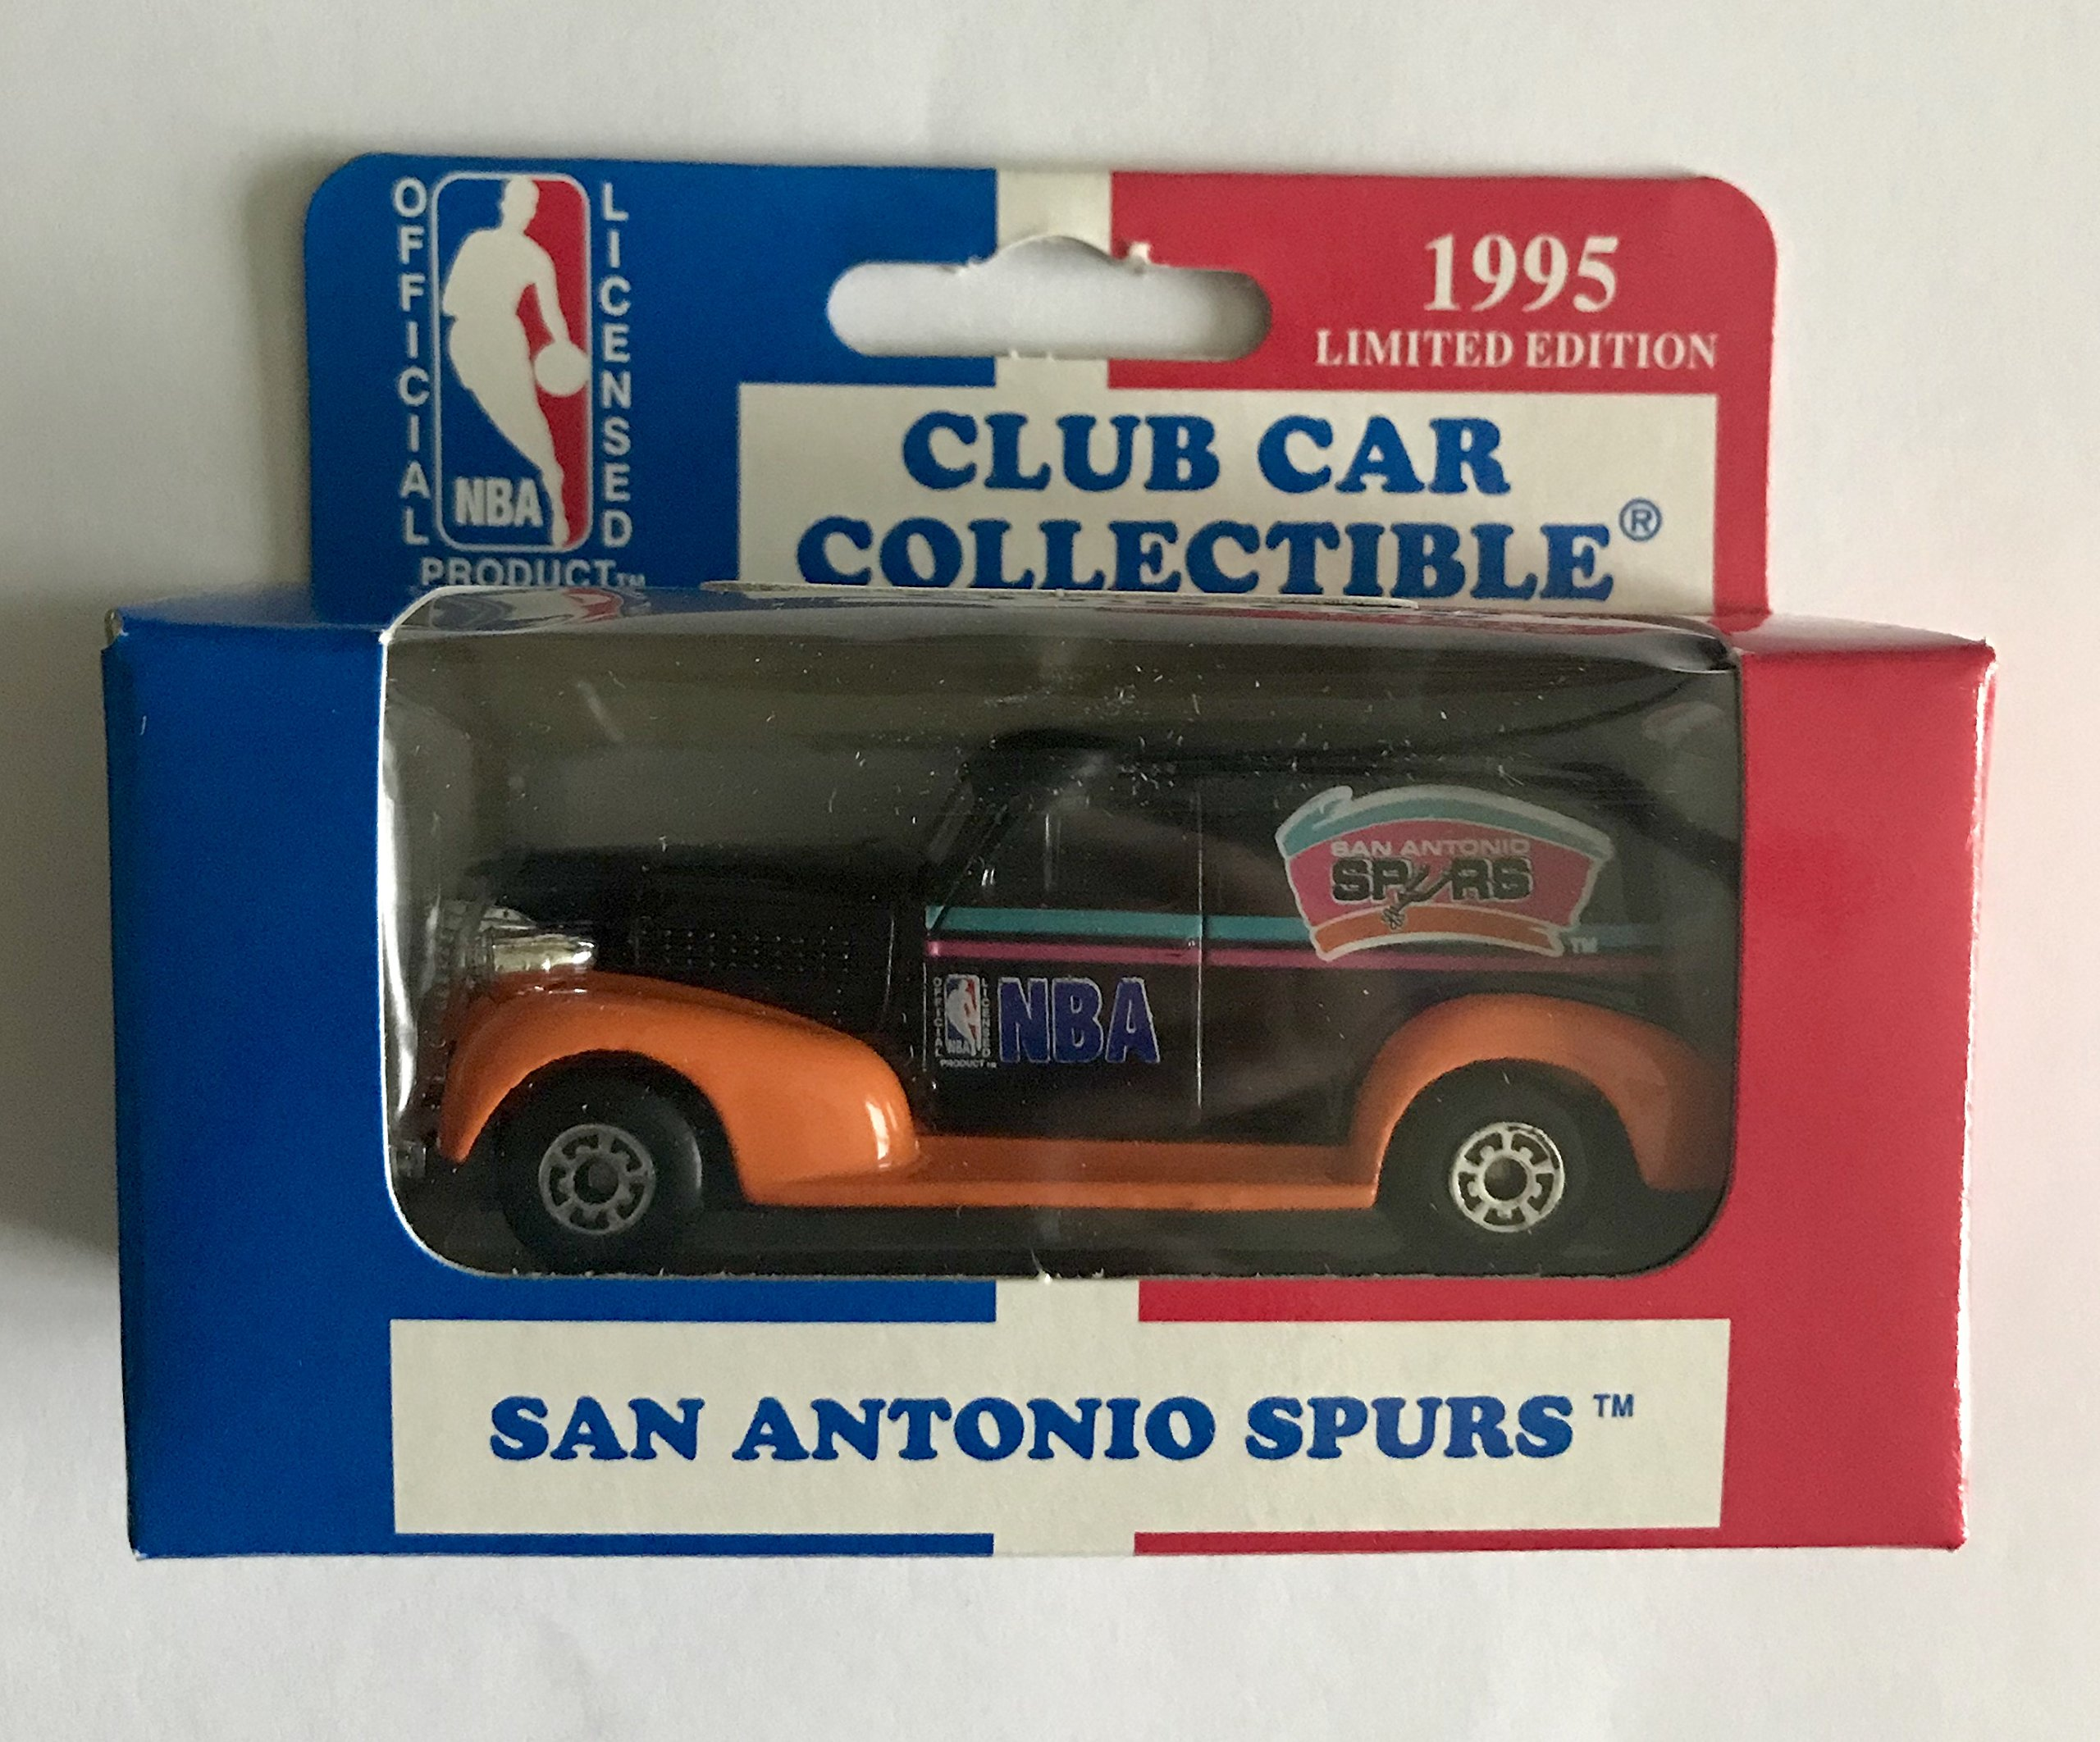 1995 Matchbox 1:64 Scale Model '39 Chevy Club Car Collectible SAN ANTONIO SPURS